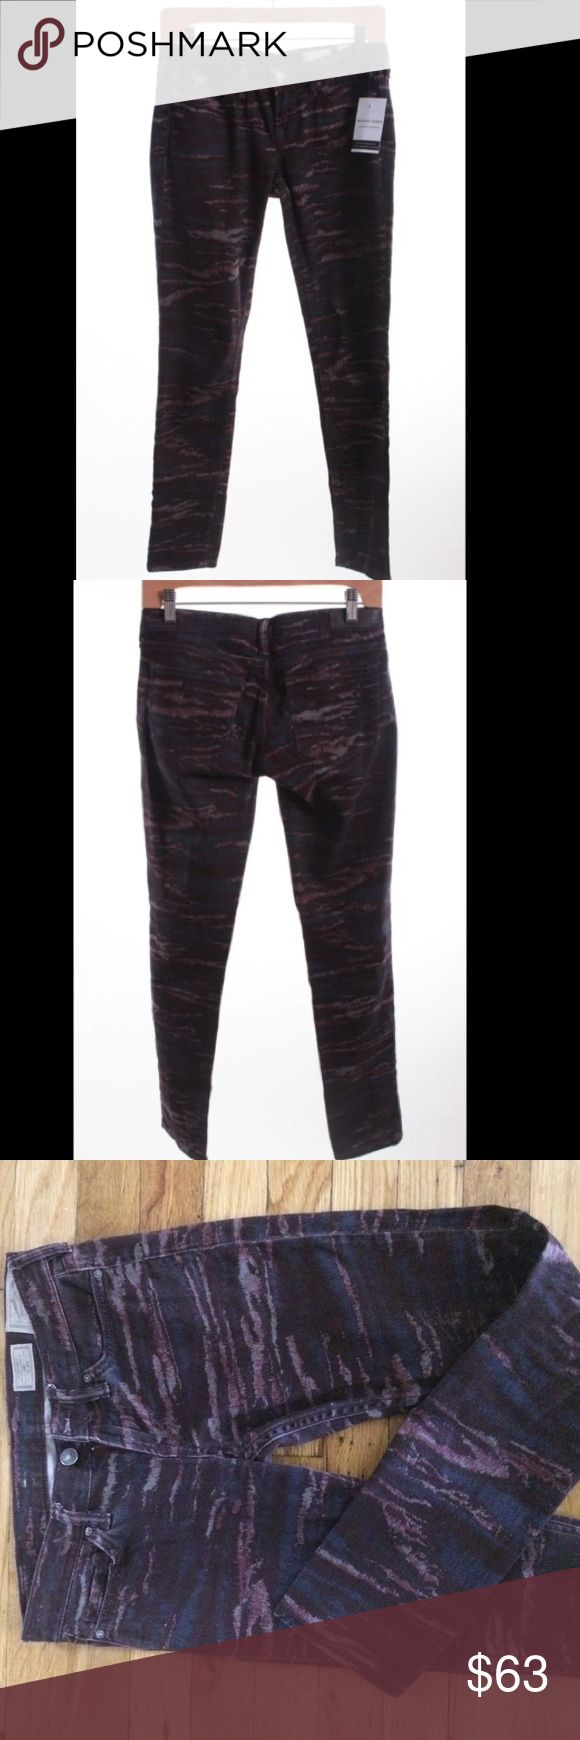 WOMEN'S ALLSAINTS JEANS 'ASHBY FLECK' WOMEN'S ALLSAINTS JEANS 'ASHBY FLECK' skinny jeans in abstract maroon camo denim  Zip fly, button and rivets all branded. Signature subtle back pocket stitching. Leather logo patch on back.  Waist size 25 All Saints Jeans